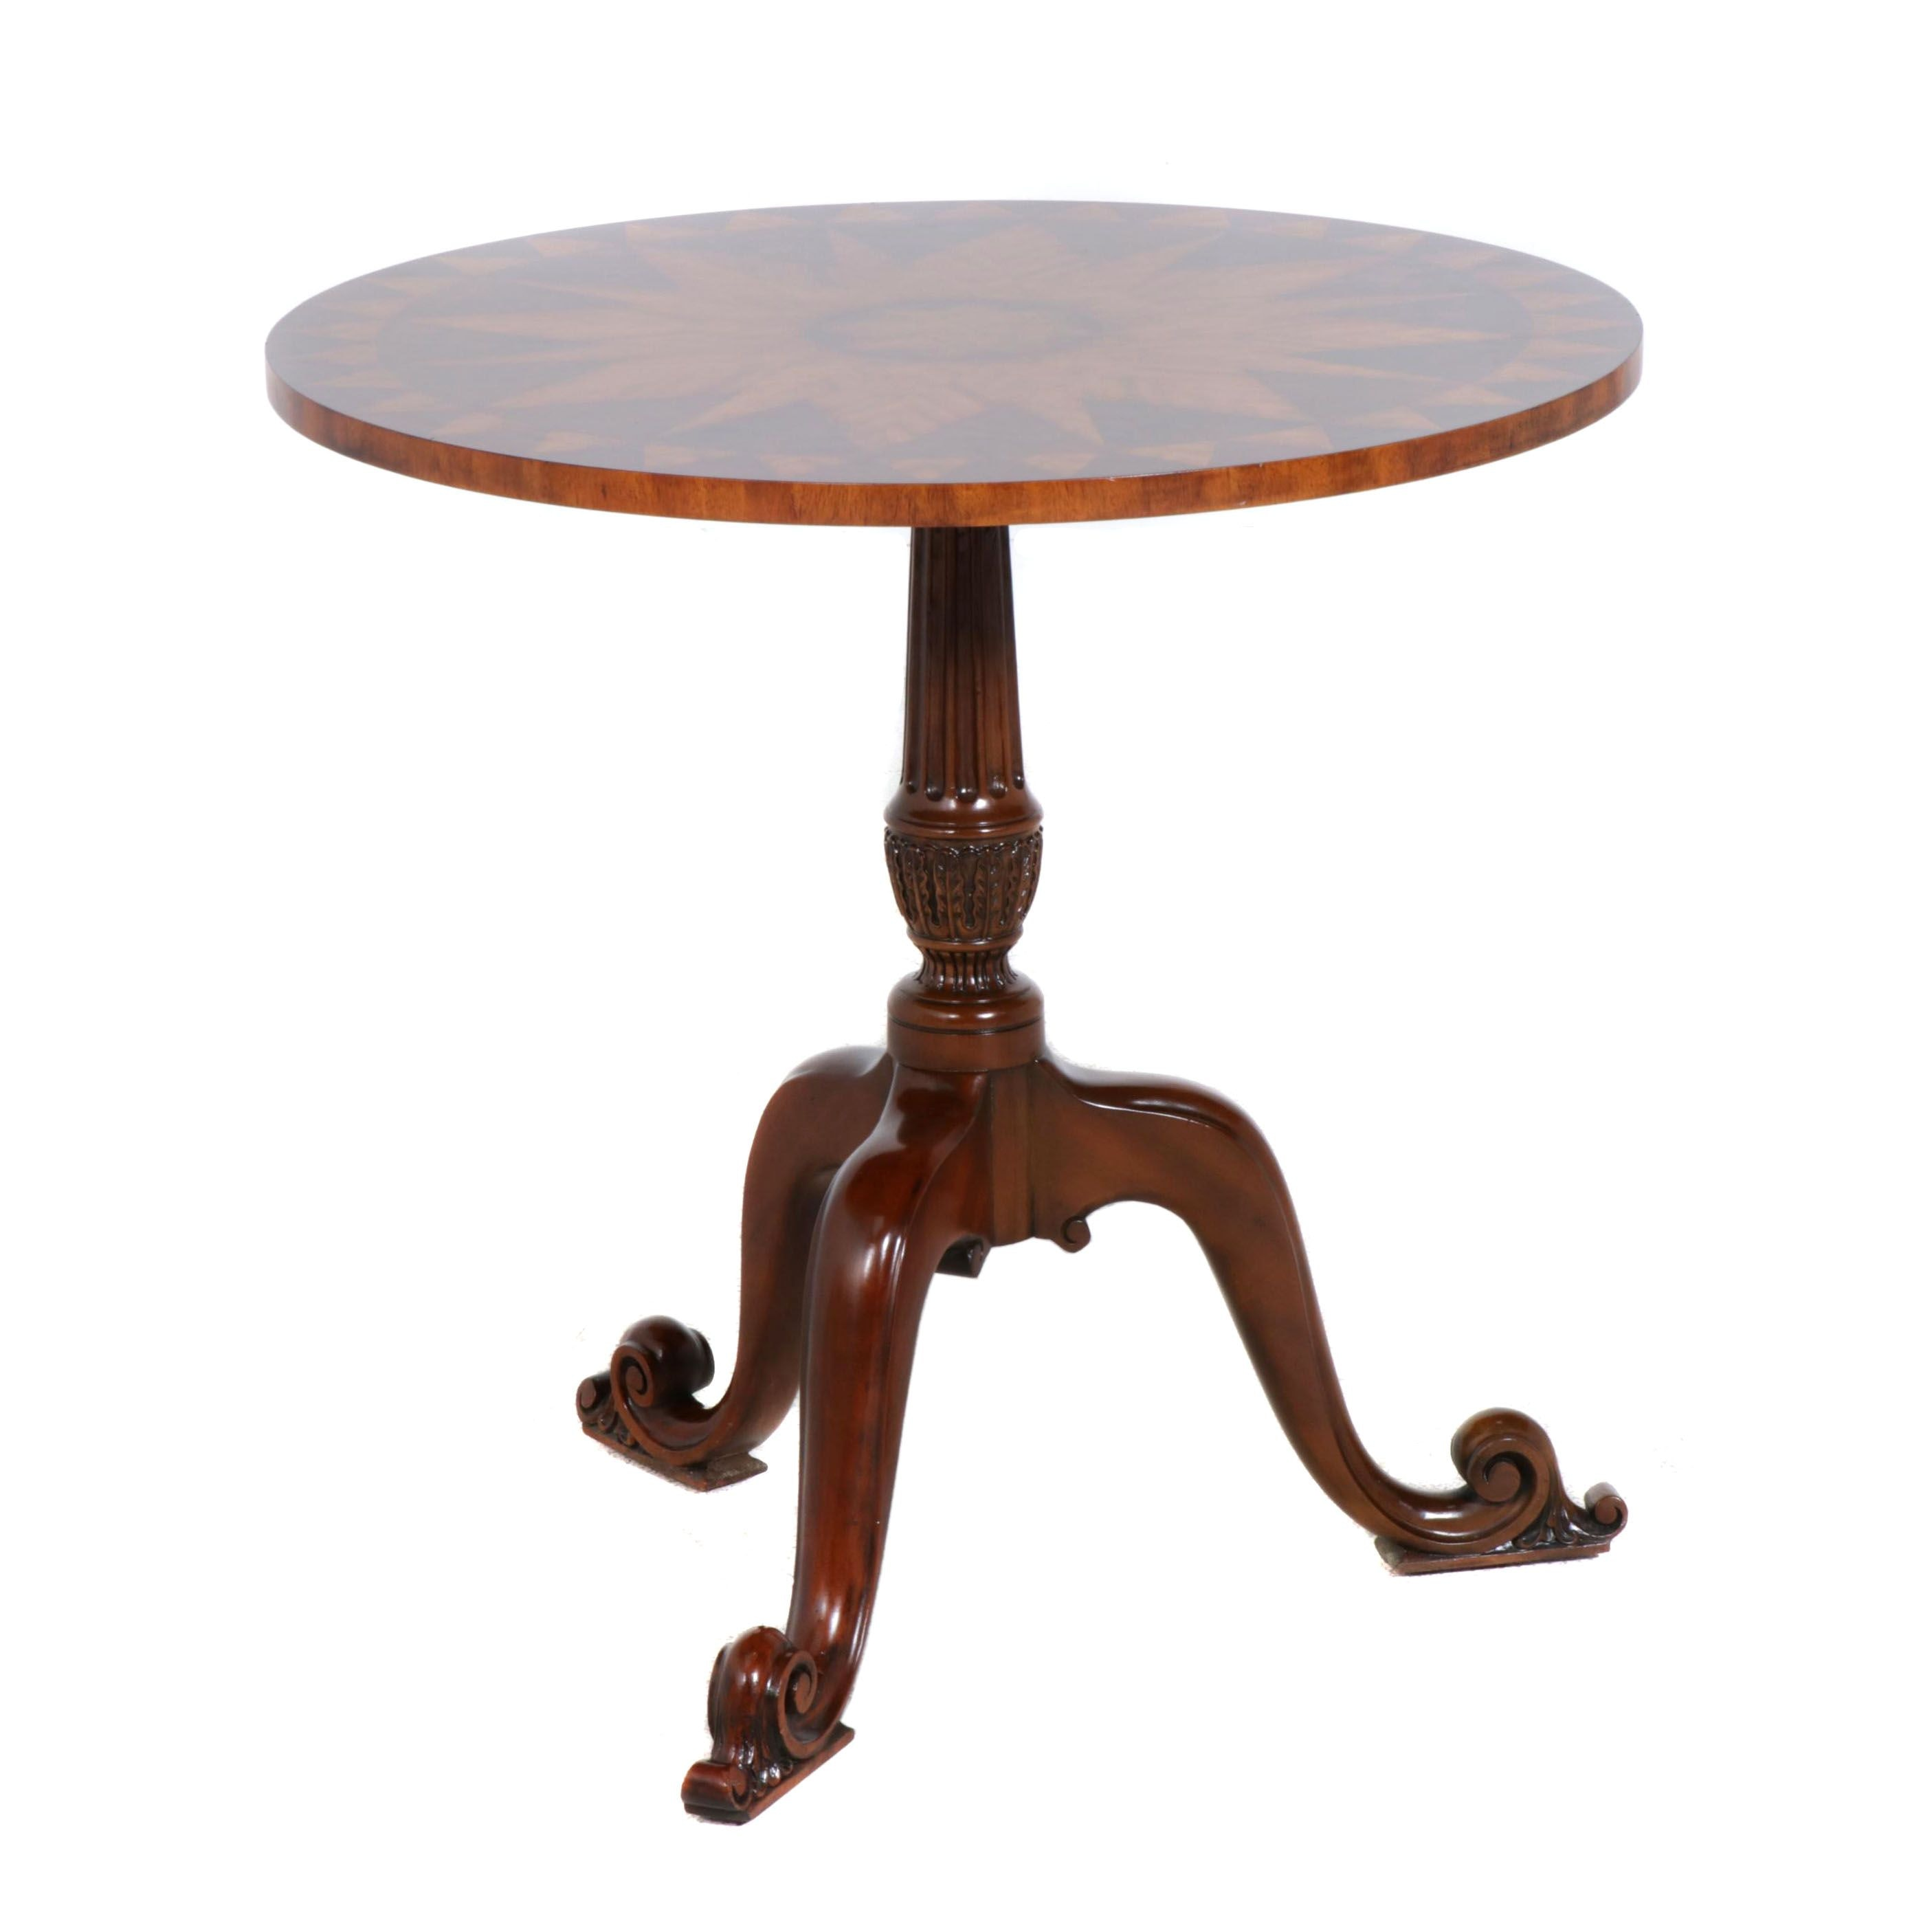 Maitland Smith Mahogany Finish and Inlaid Wooden Table